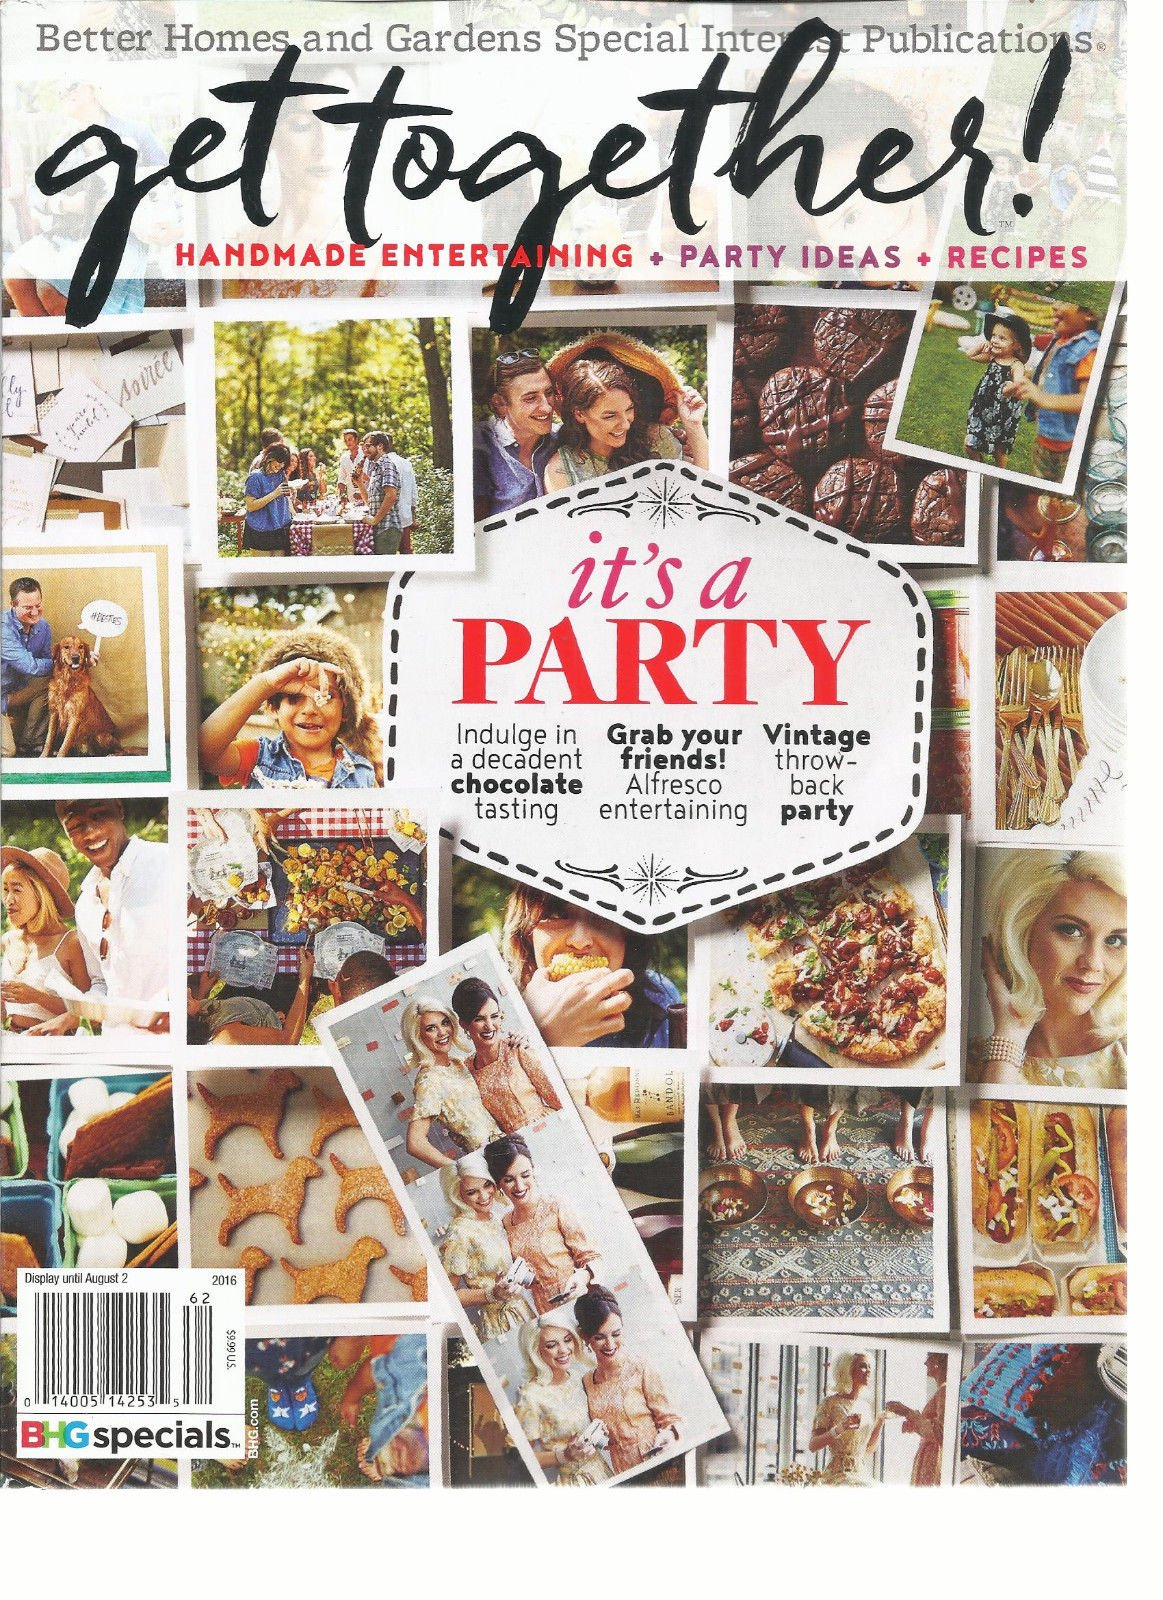 Better Homes and Gardens Get Together 2016, Hand made entertaining+ Party idea +